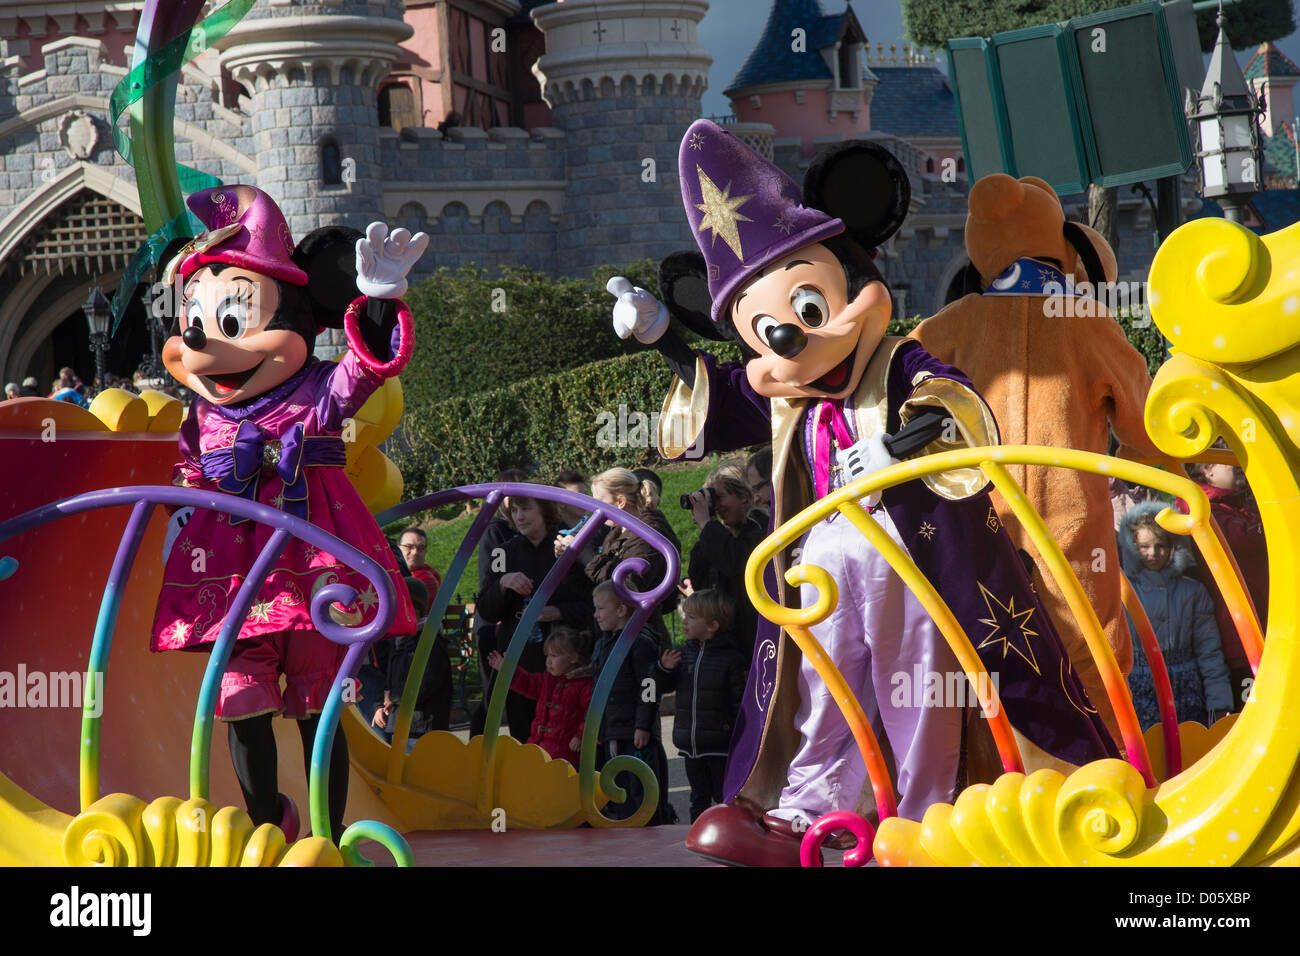 Disneyland Parade with Mickey and Minnie Mouse on a float, Disneyland Paris (euro disney) - Stock Image